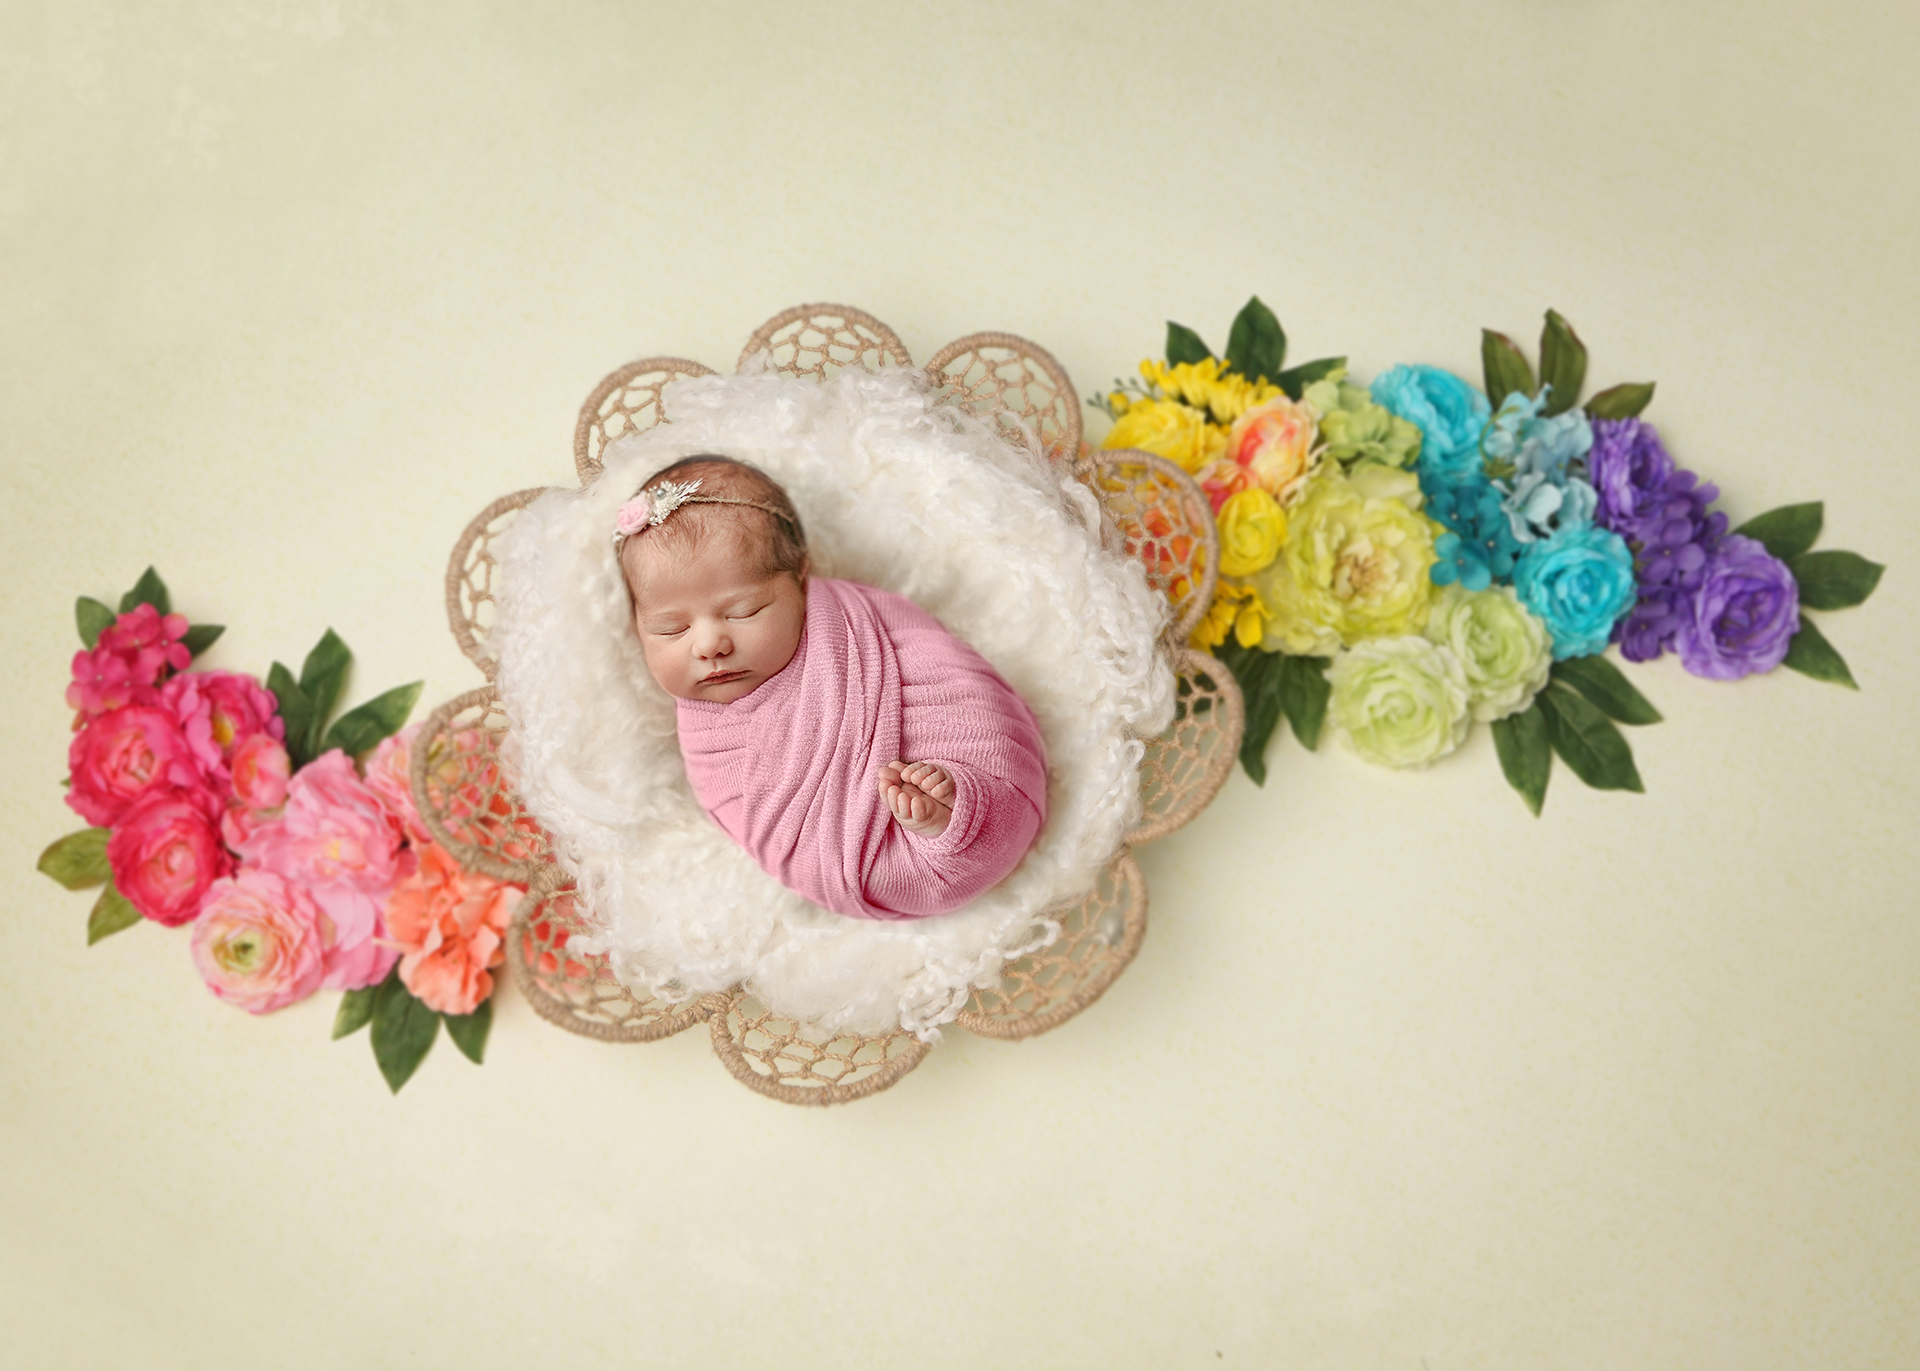 rainbow baby in dreamcatcher bowl with flowers for classic newborn photography session